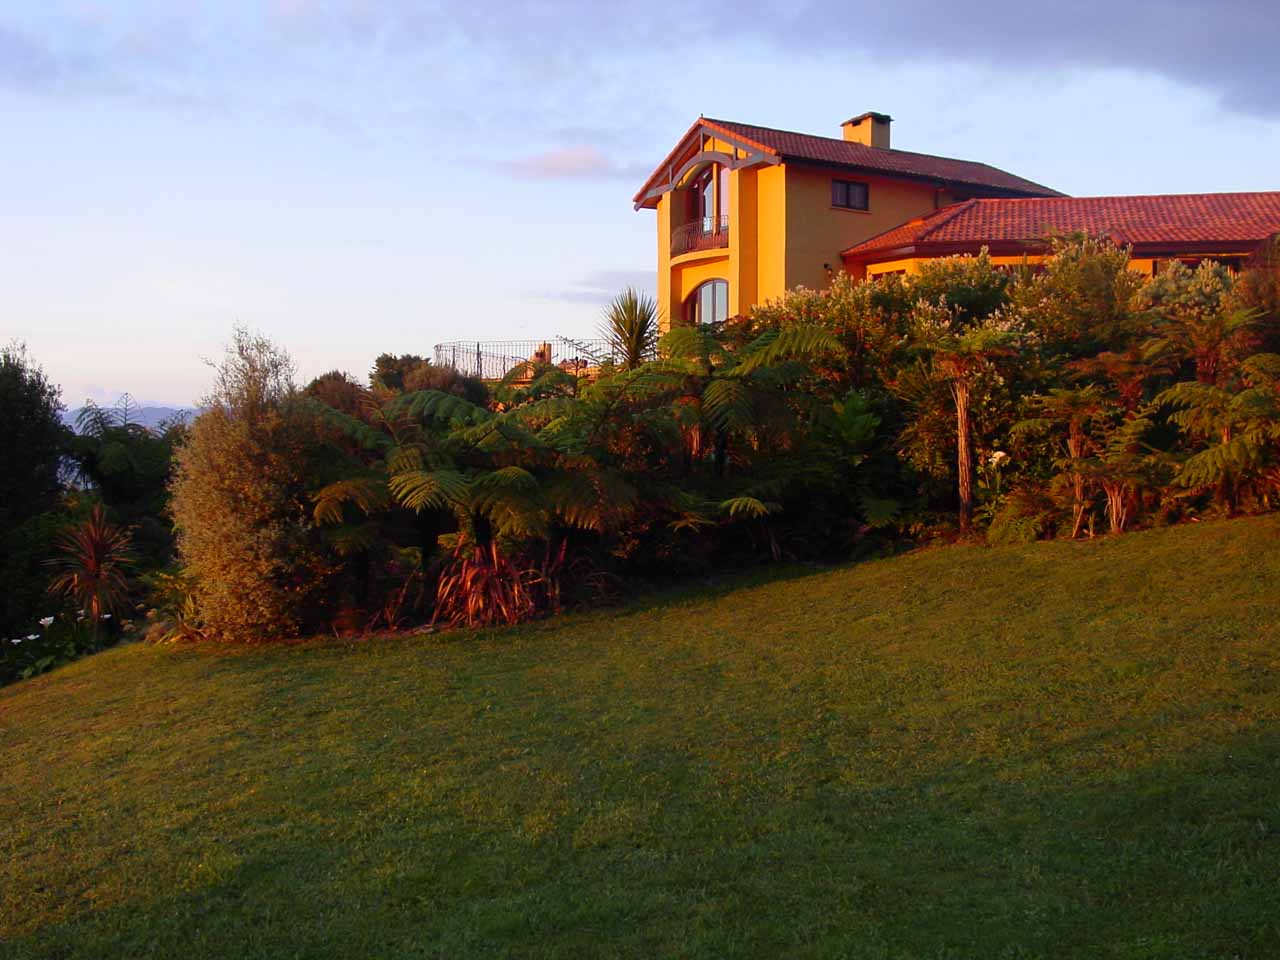 Gorgeous glow on the Villa Toscana Lodge in the early hours of the morning